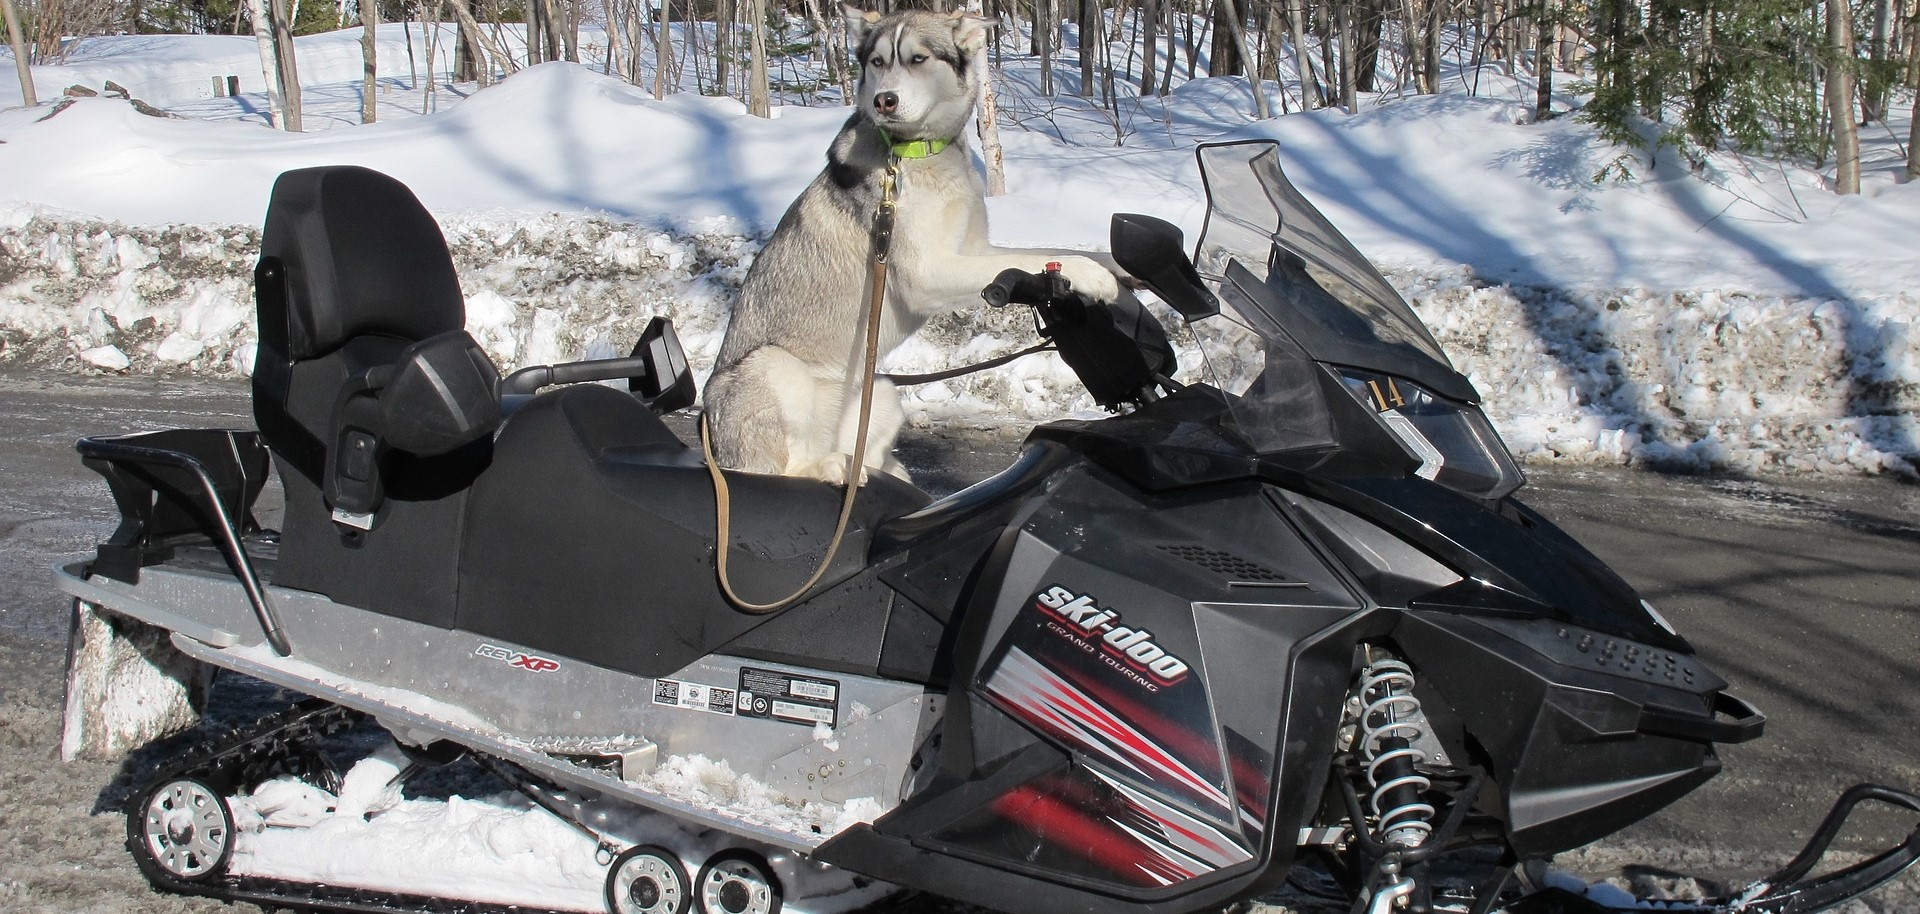 Proceeds from your snowmobile donation will help sustain and improve comprehensive breast health services in your city.